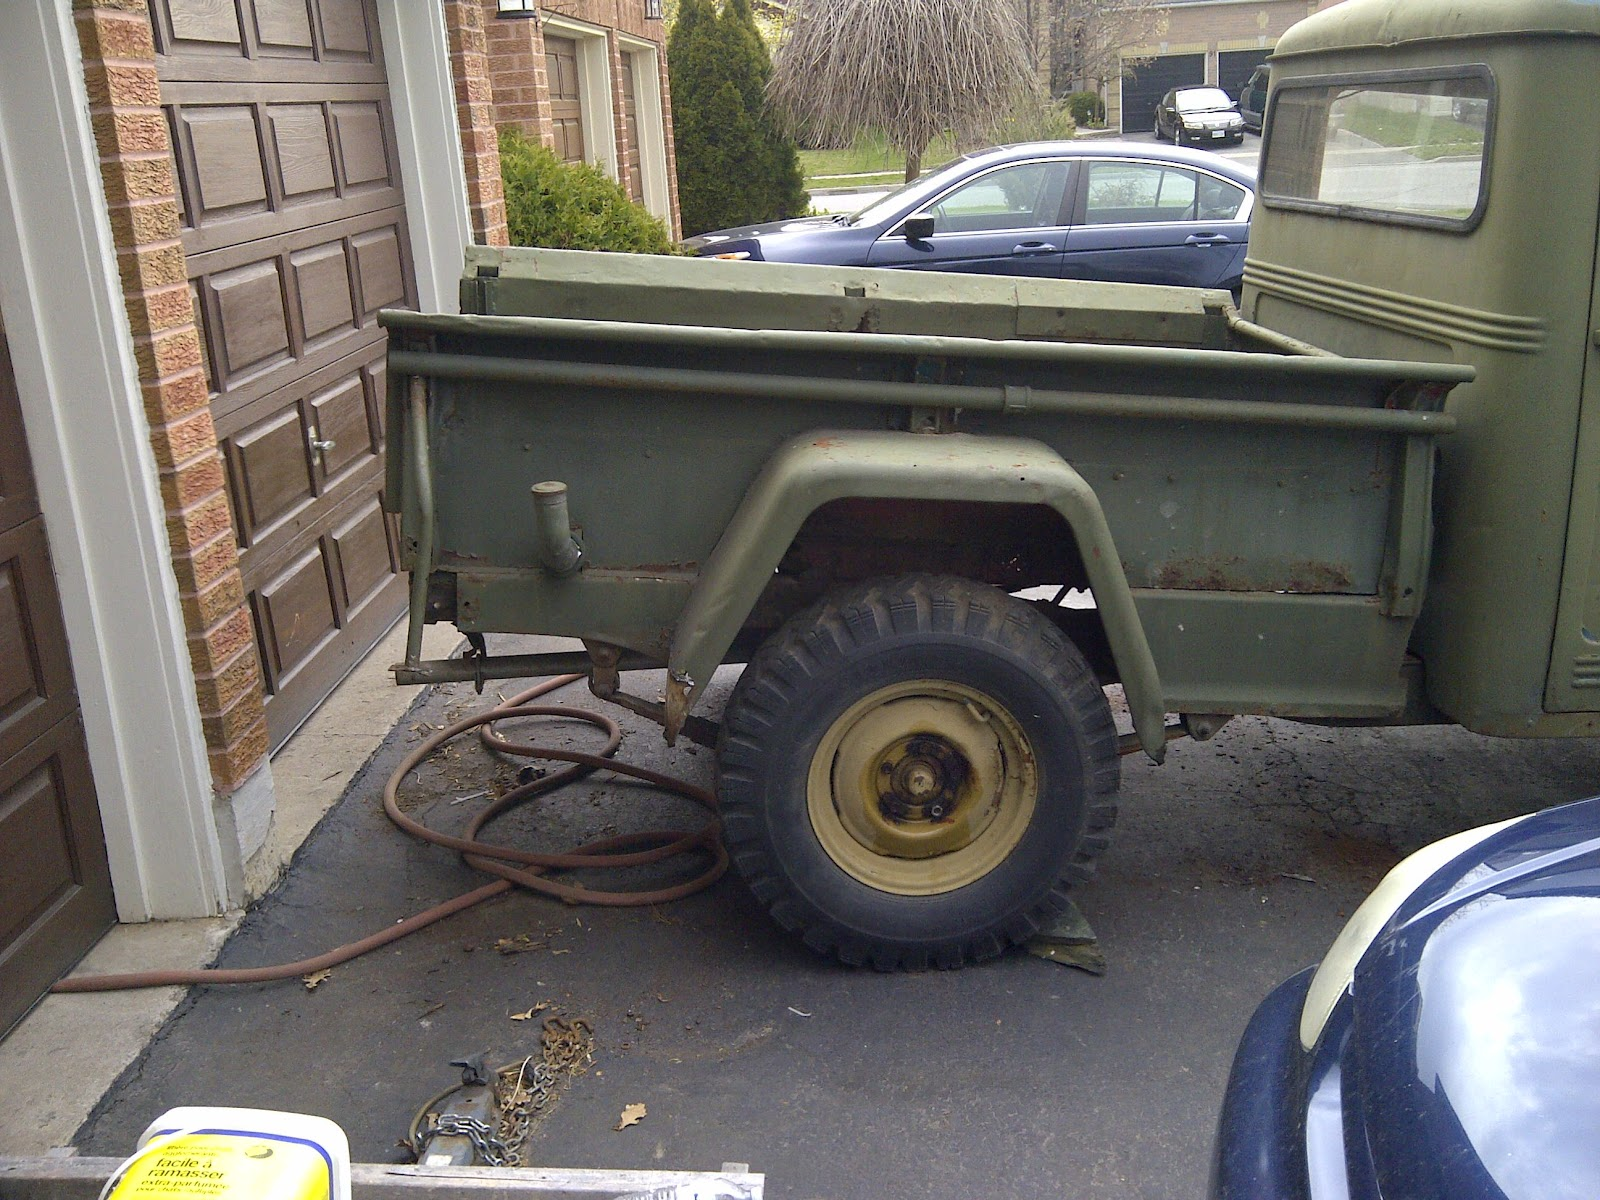 Like A Hurricane 1960 Willys Pickup Project The Garage Journal Board 1950 Jeep Truck This Gives Much More Aggressive Back End Unfortunate That So Many Old Pickups Tailgate Is Missing